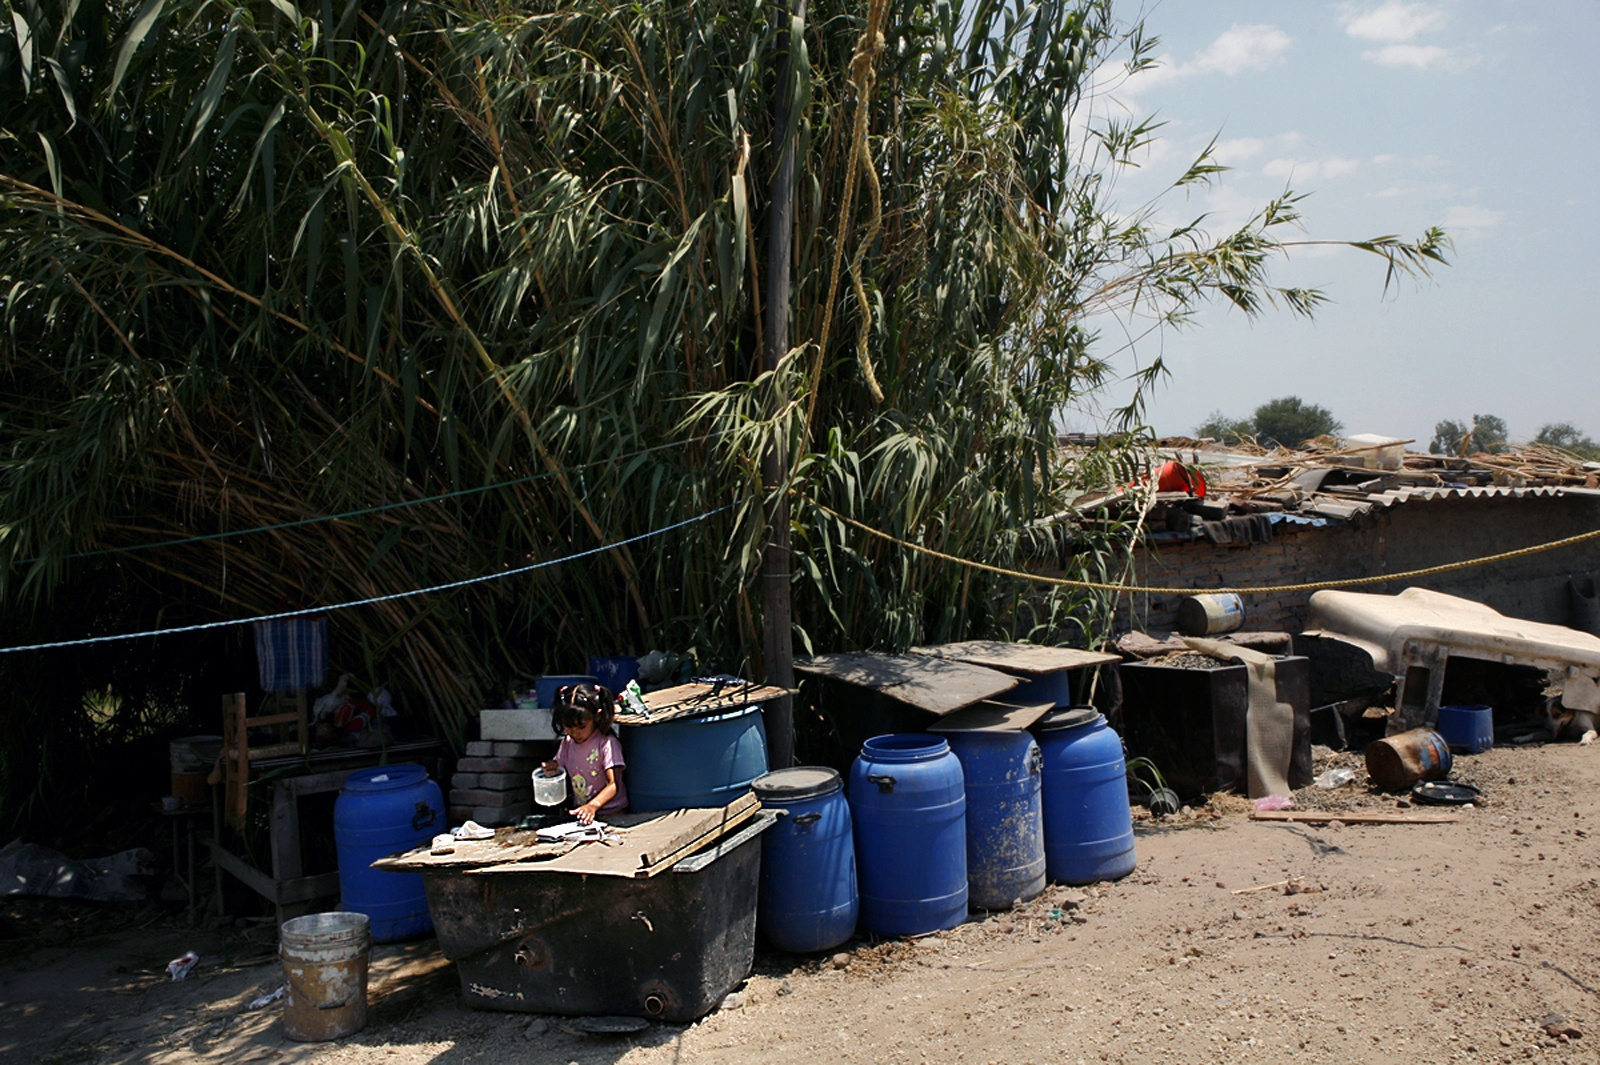 As Guadalajara has expanded, the extraordinary population growth within the outer zones of the city has outpaced the reach of municipal infrastructure that treats and delivers clean water. In many of these communities, the local aqueduct is polluted with toxic chemicals. Natural reservoirs and groundwater are stagnant, impure and unsuitable for any use. High exposure to chemical contaminants and infectious disease pose serious health risks to the families and workers in these areas. Potable water for drinking and cooking is trucked into the neighborhood.